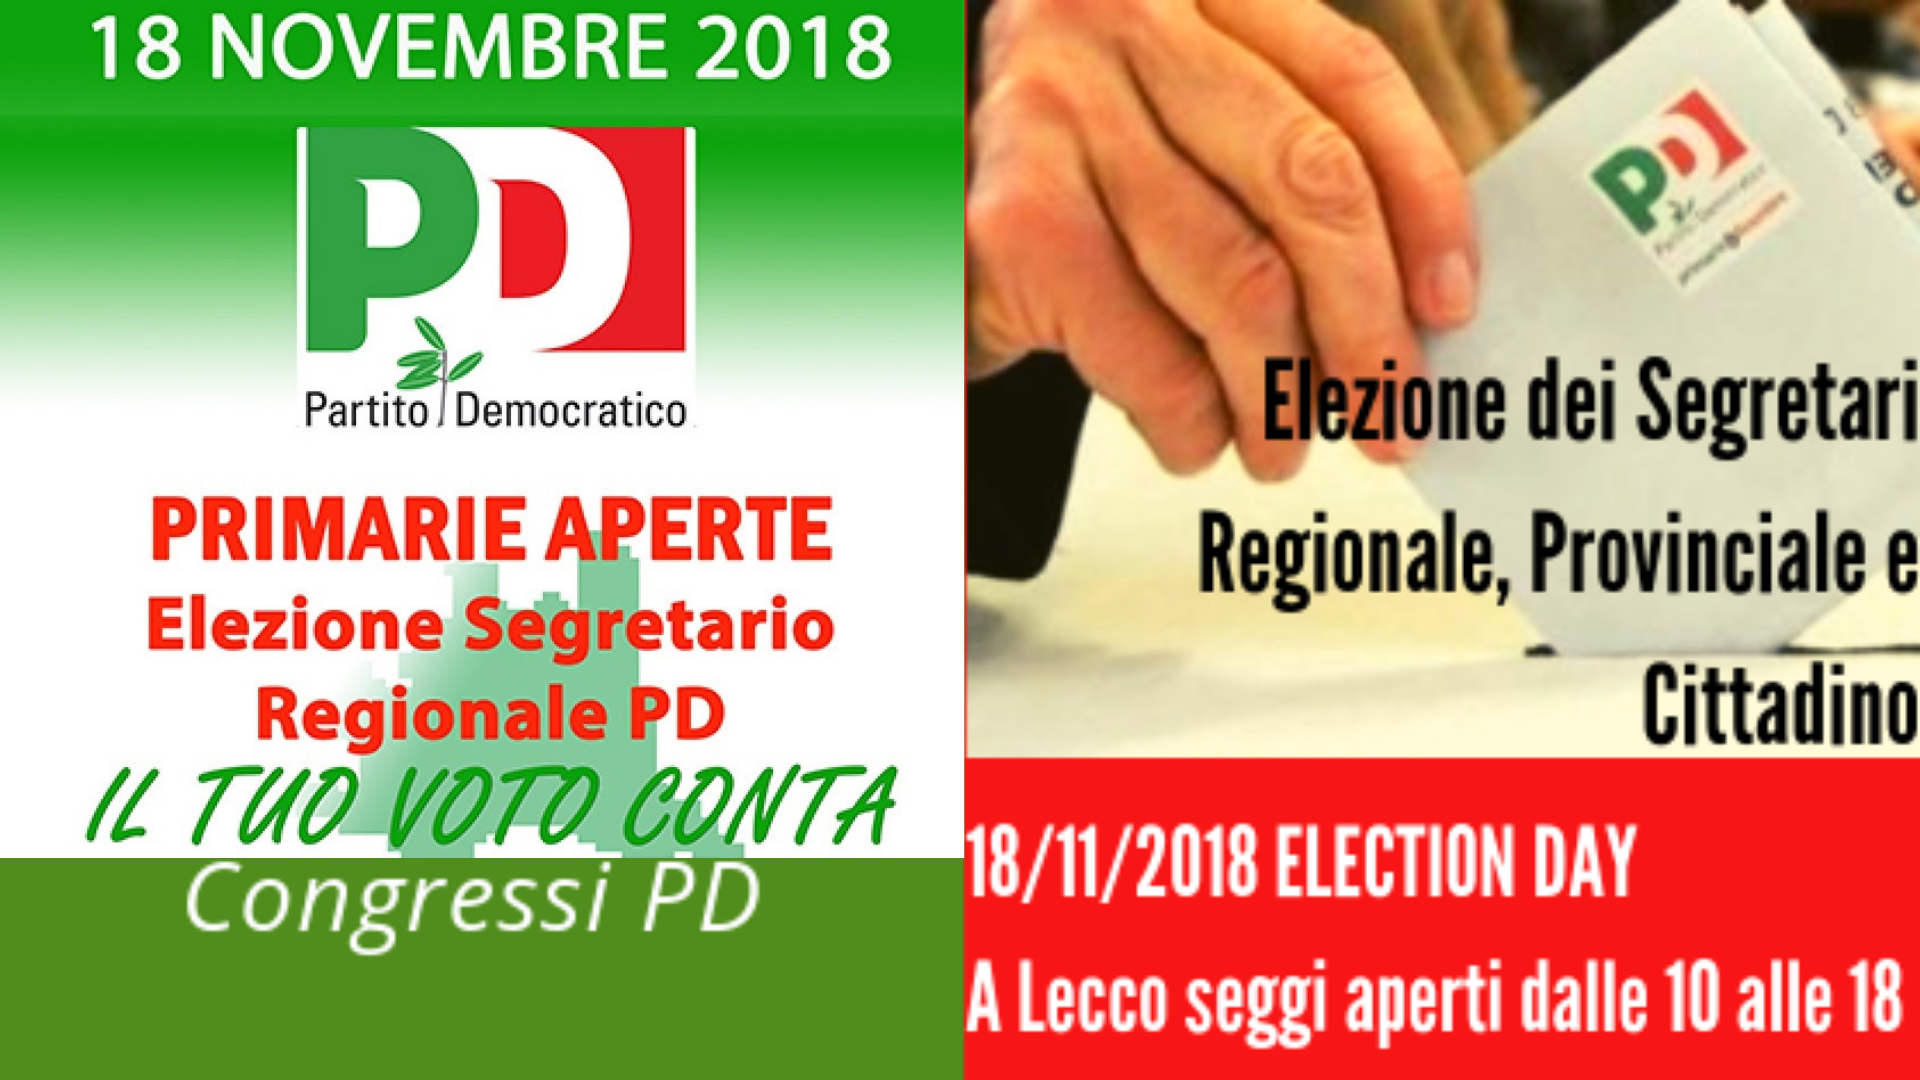 http://lecconews.news/wp/wp-content/uploads/2018/11/post-evento-voto.png